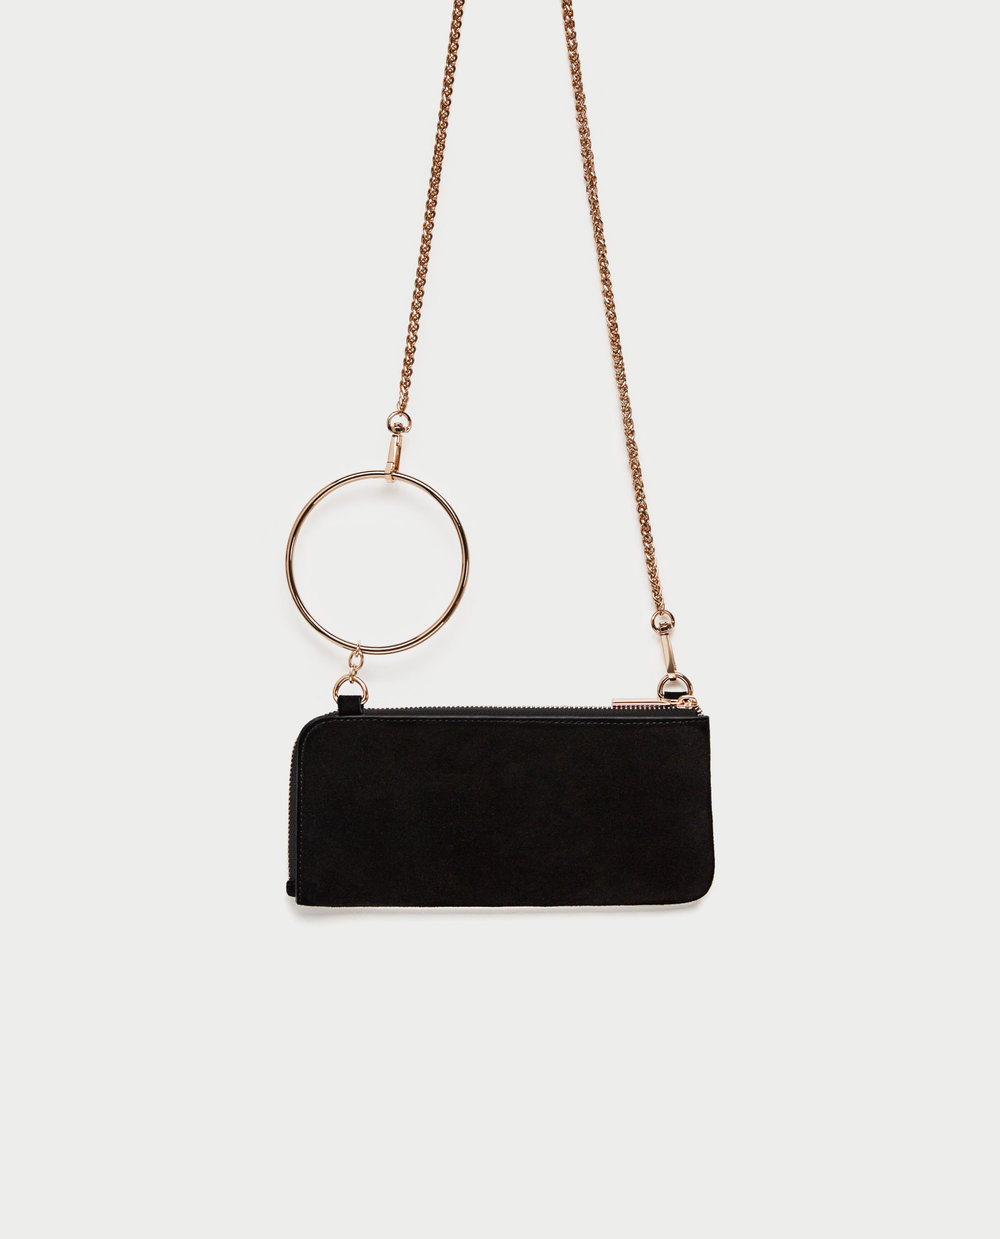 zara Splite suede Crossbody wallet - The perfect, sleek date night look!